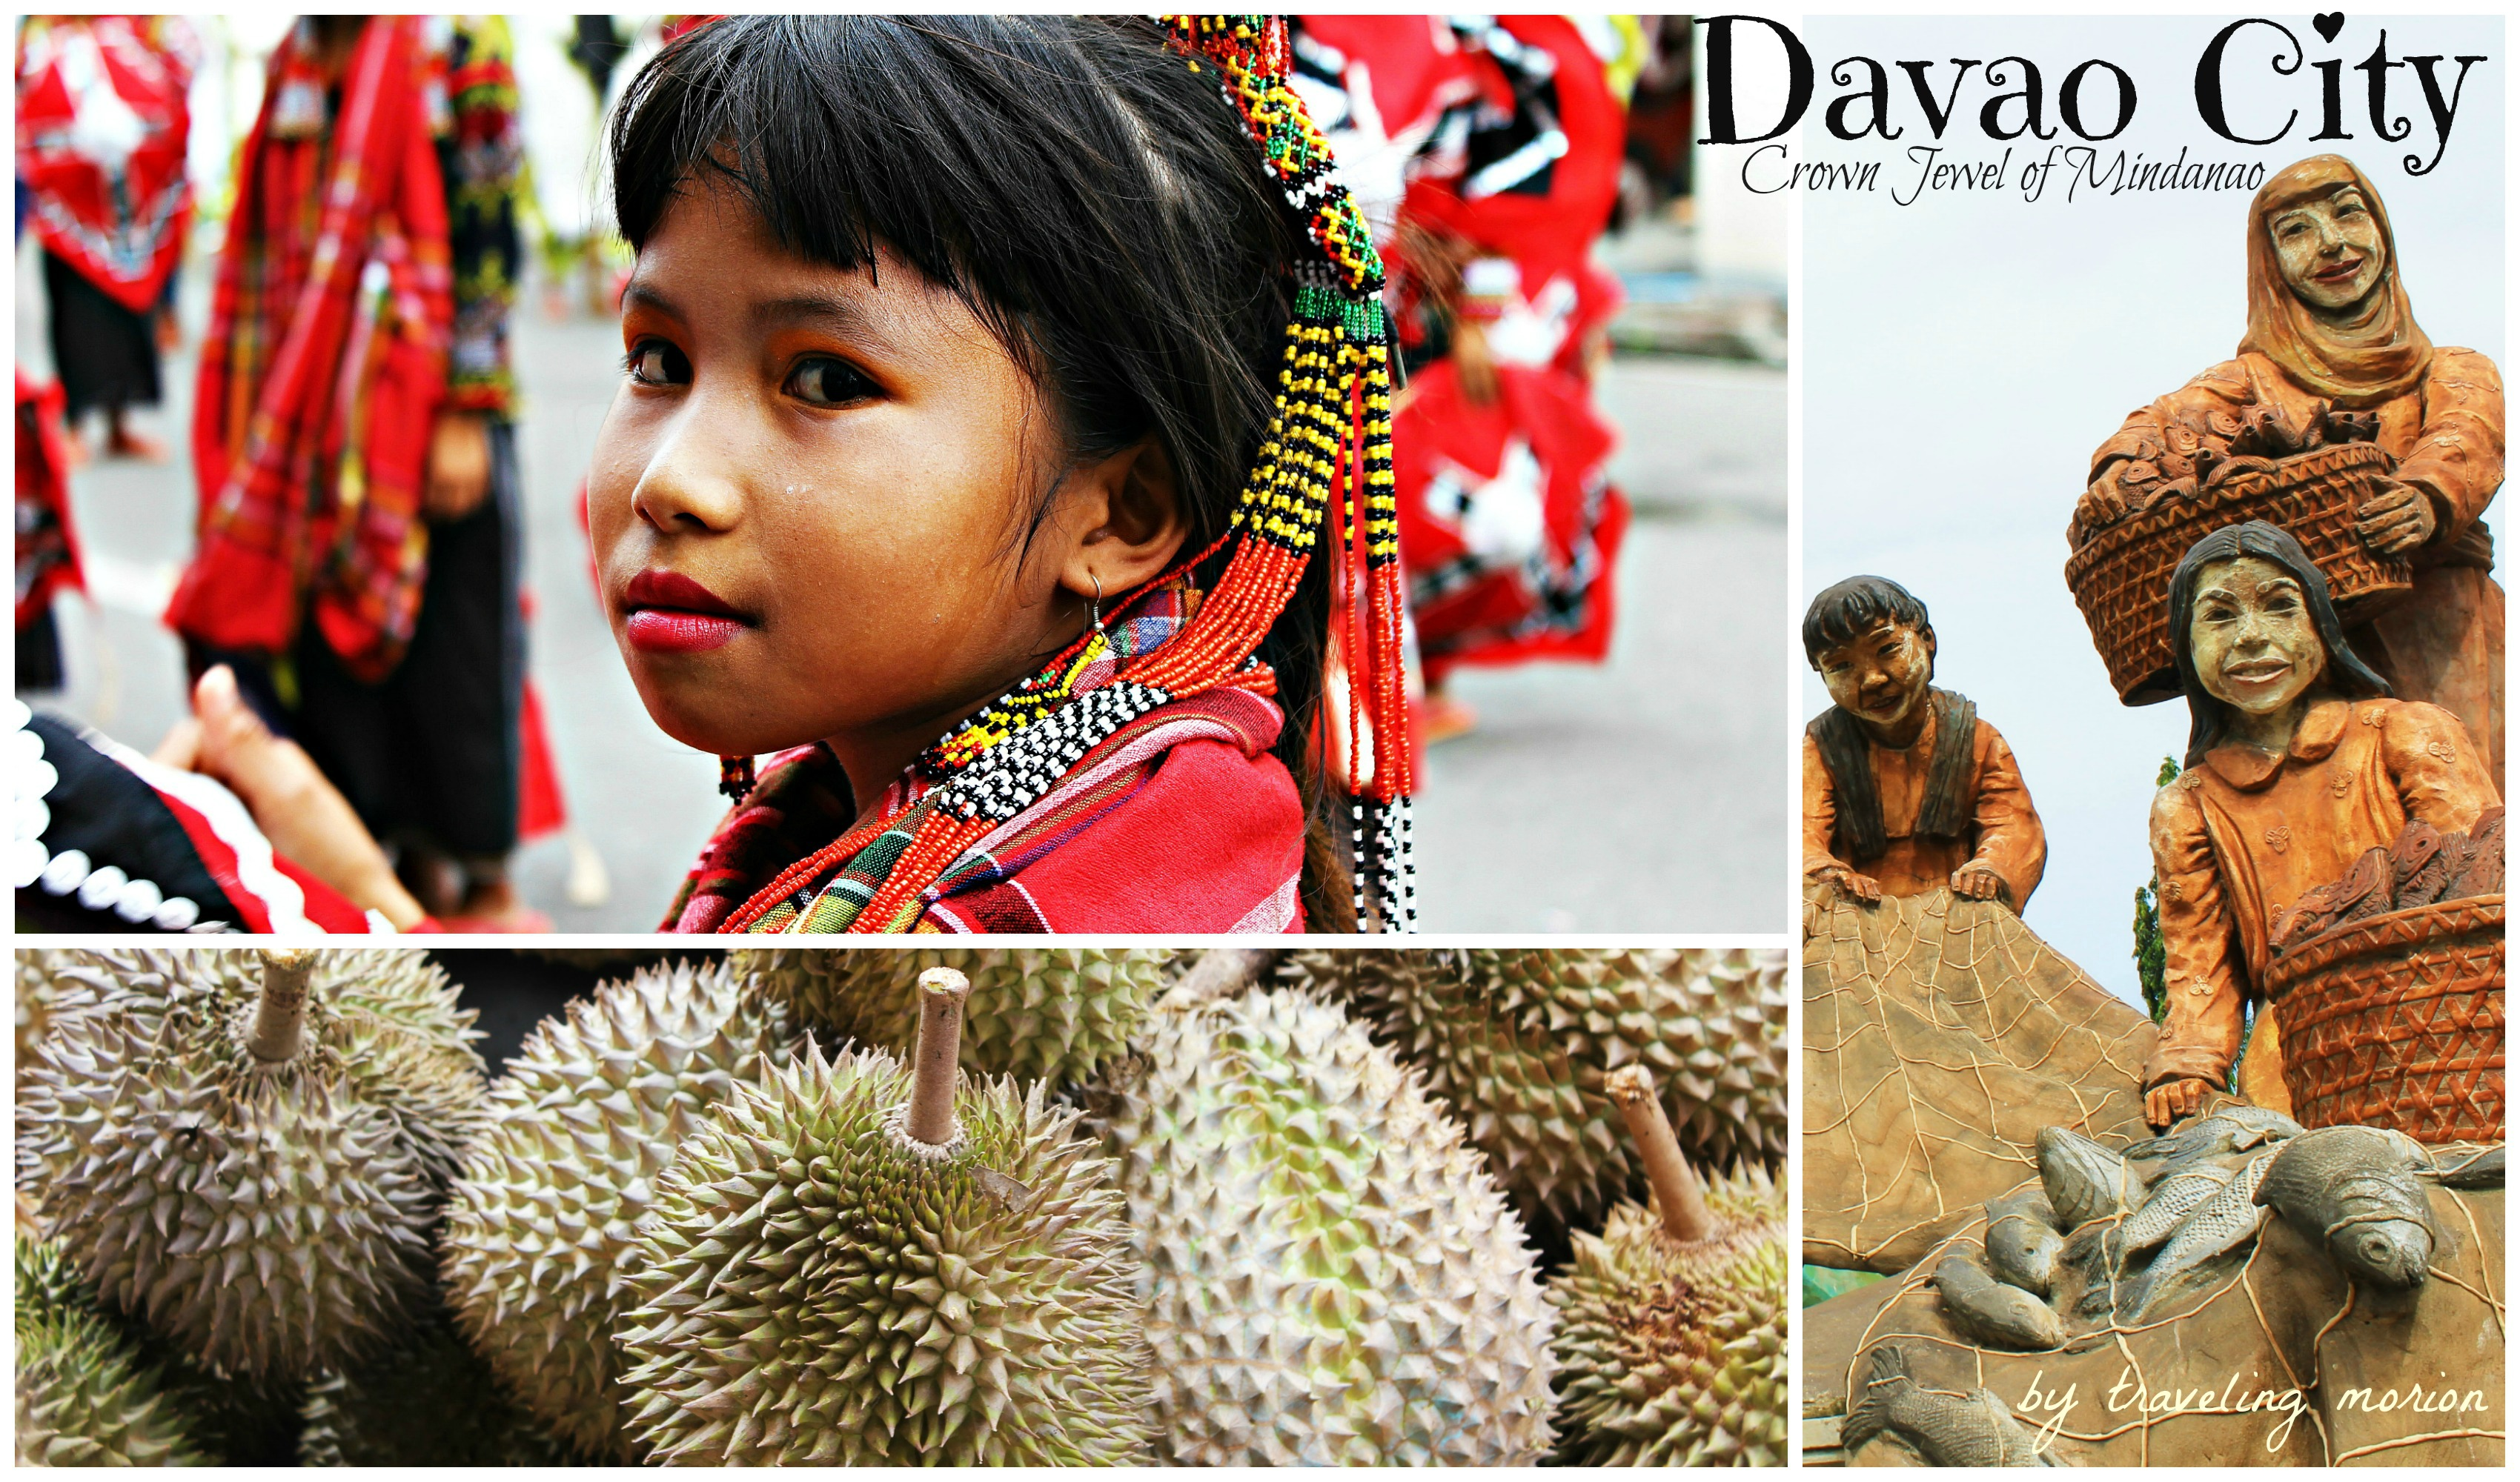 Davao City Travel Guide